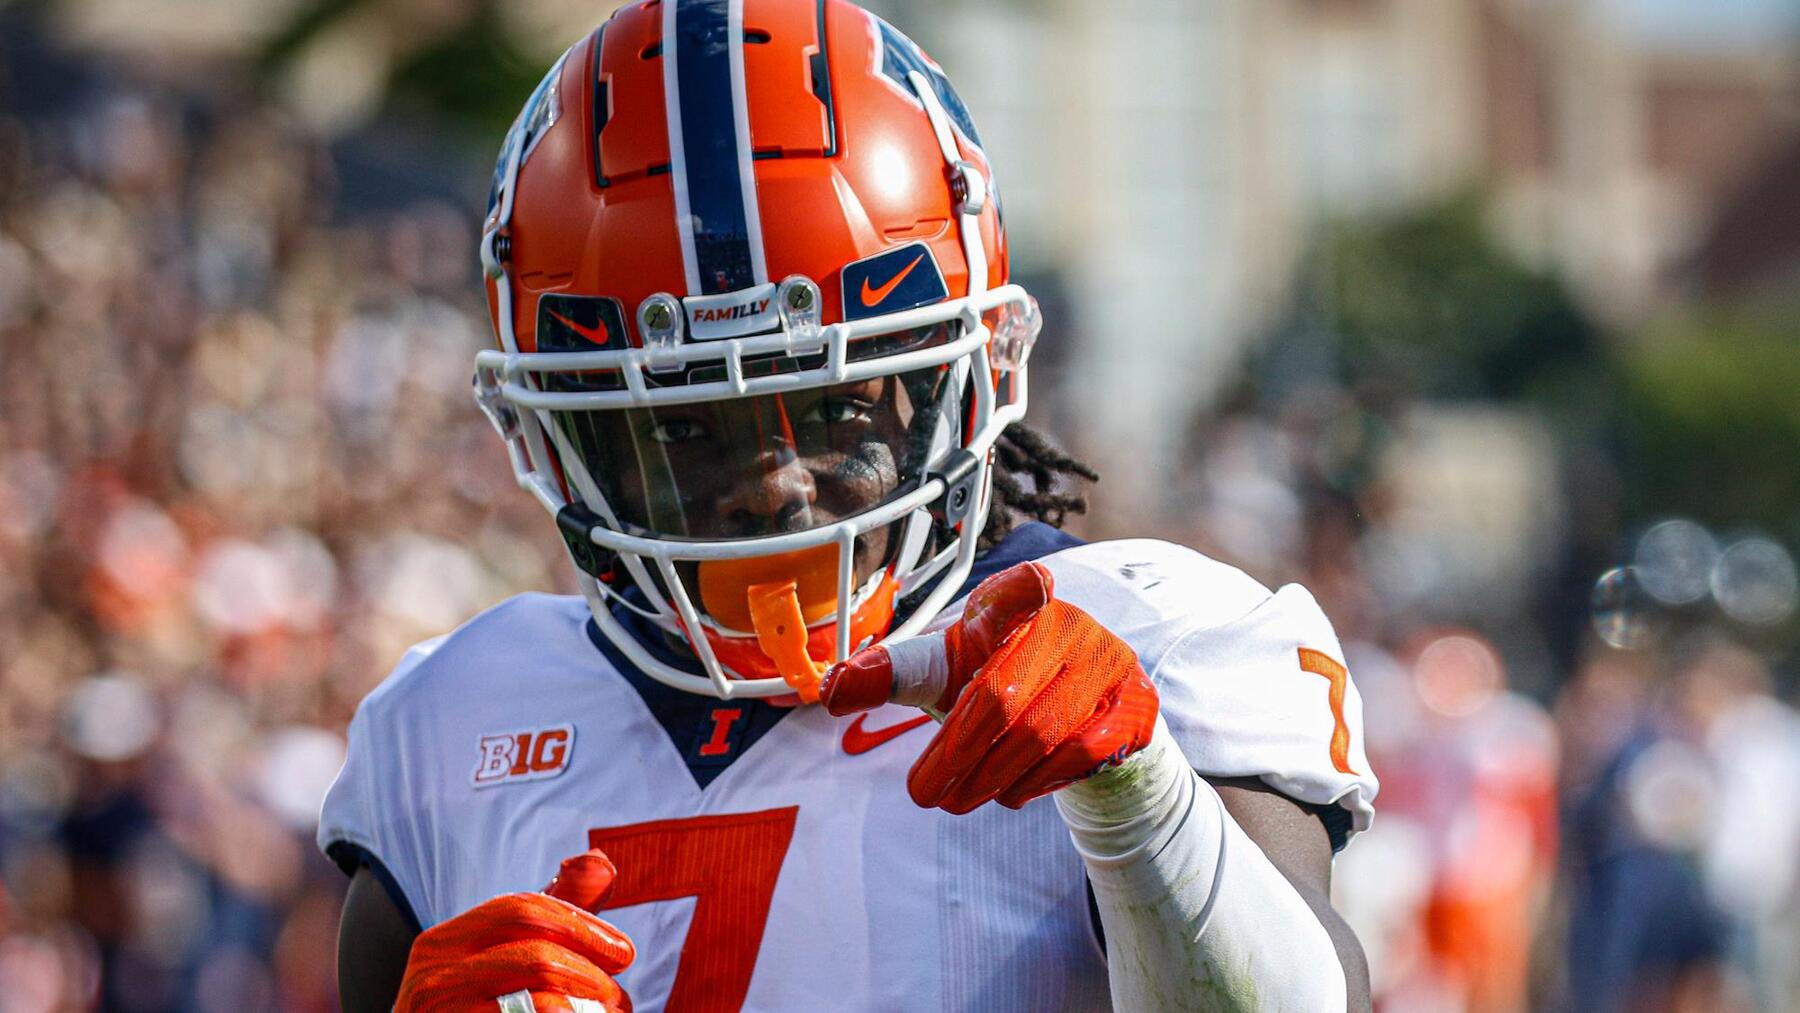 game action close-up photo of Illini Kendall Smith looking at camera and pointing finger